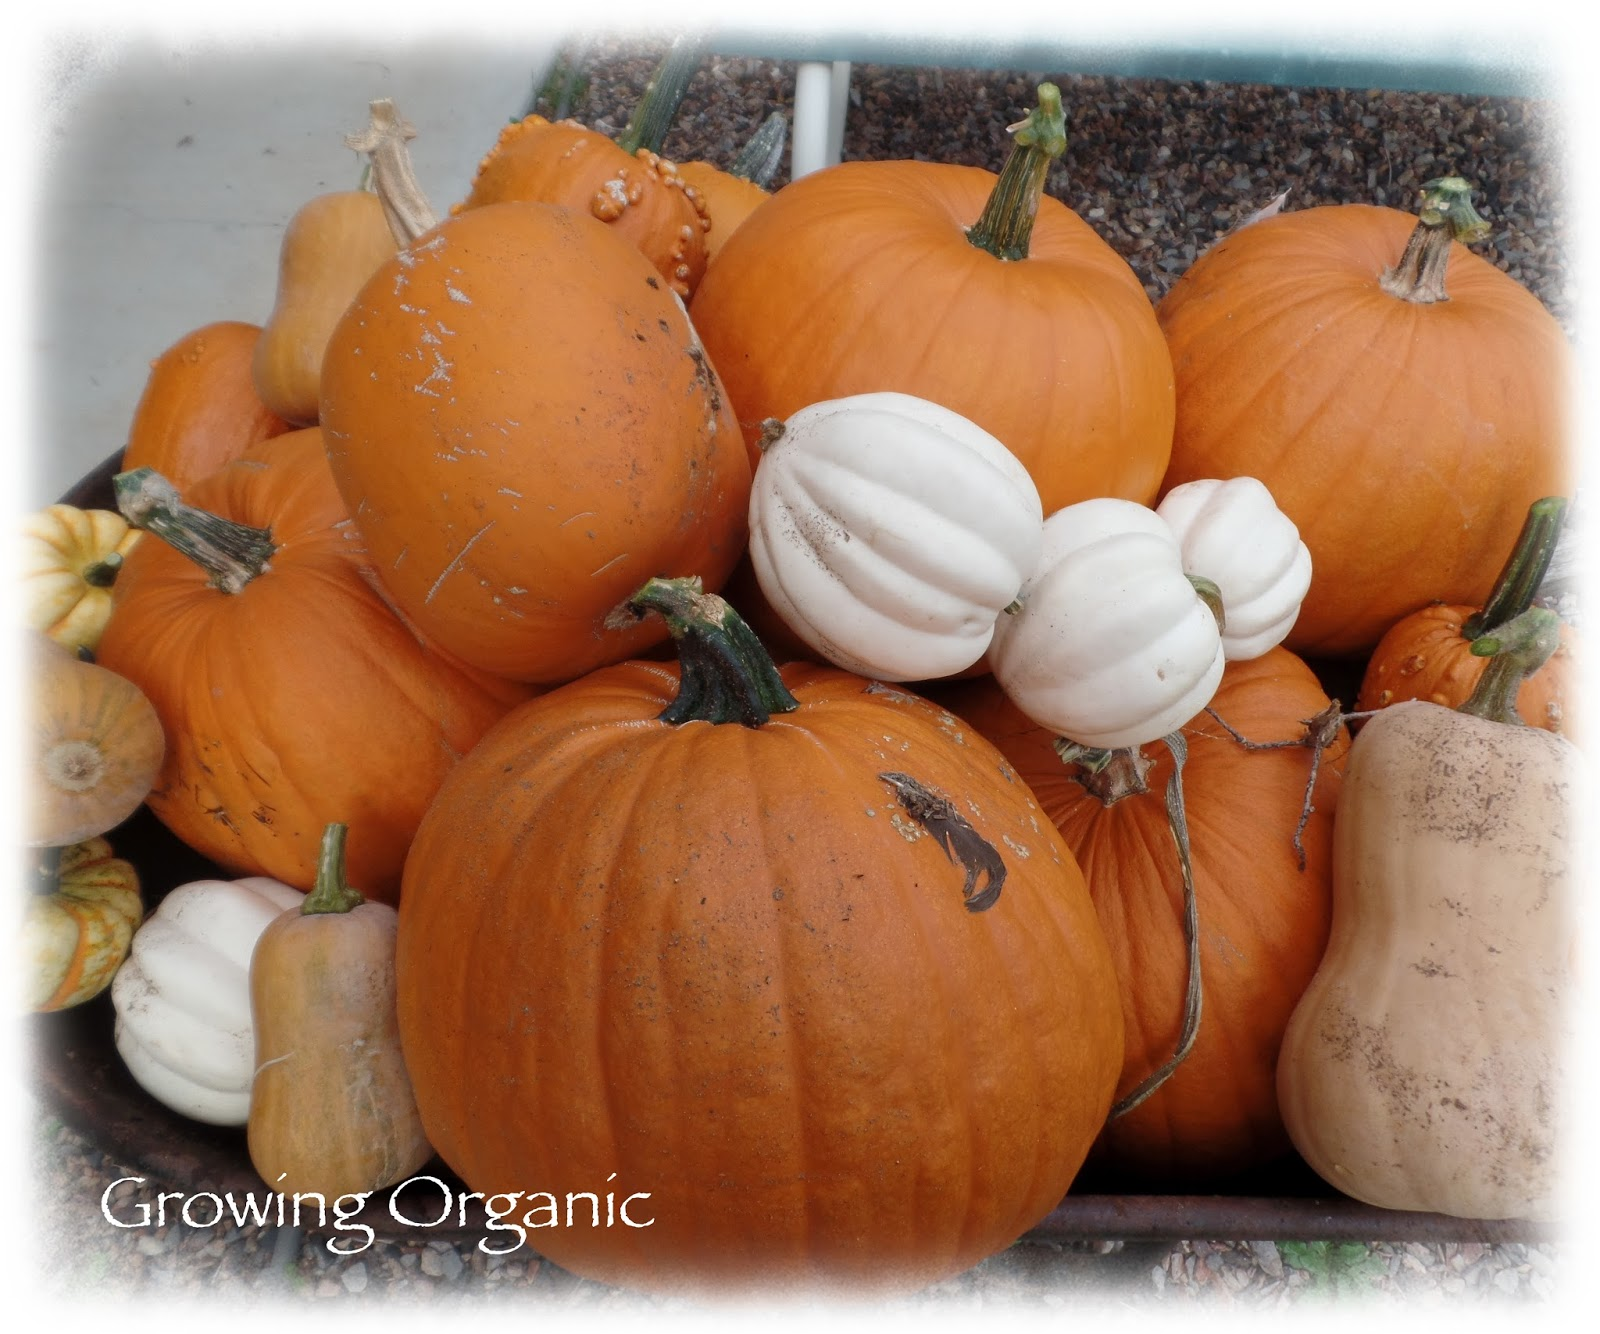 Growing Organic : Feeding Your Family From the Garden